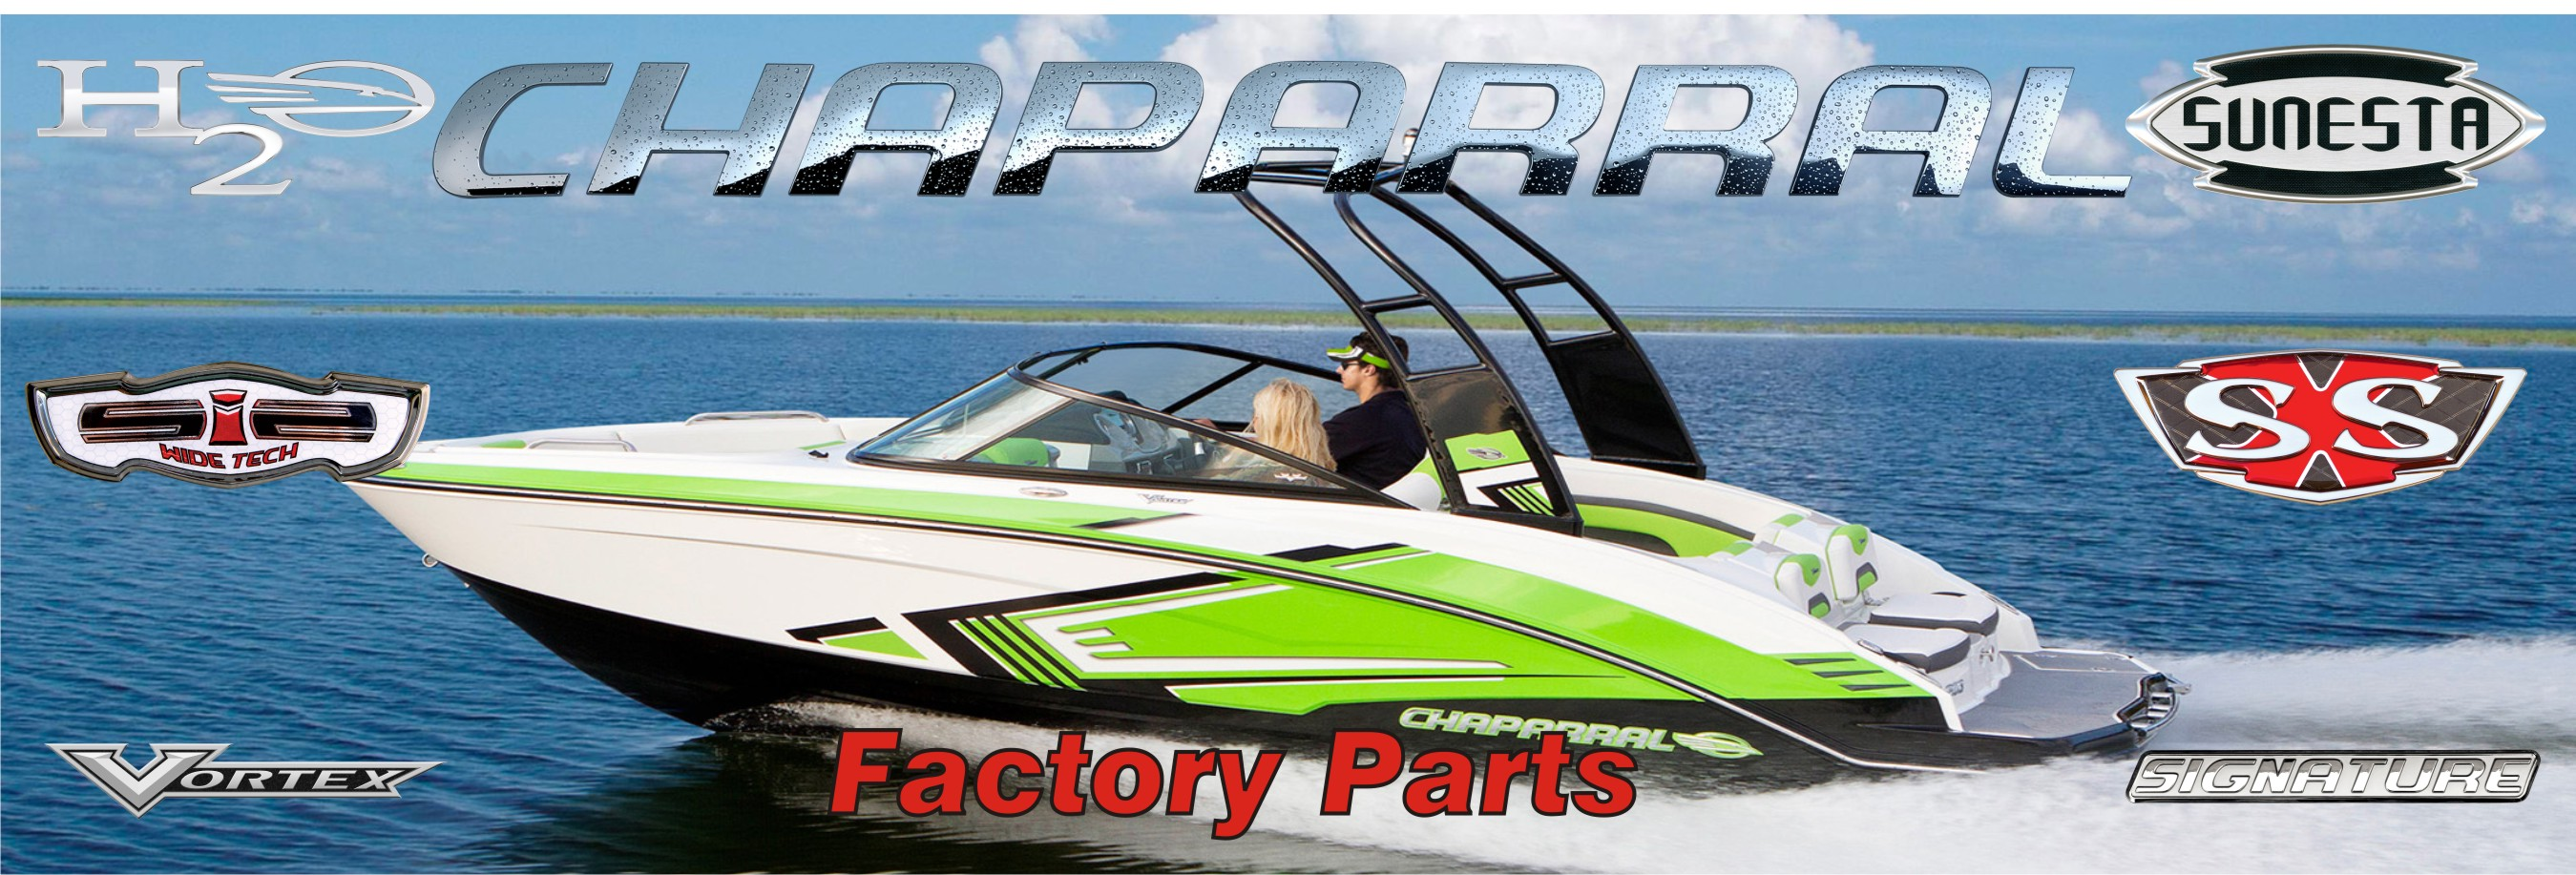 Sea Doo Parts House - Best Car Reviews 2019-2020 by ...  Ski Doo Mpem Wiring Diagram With on